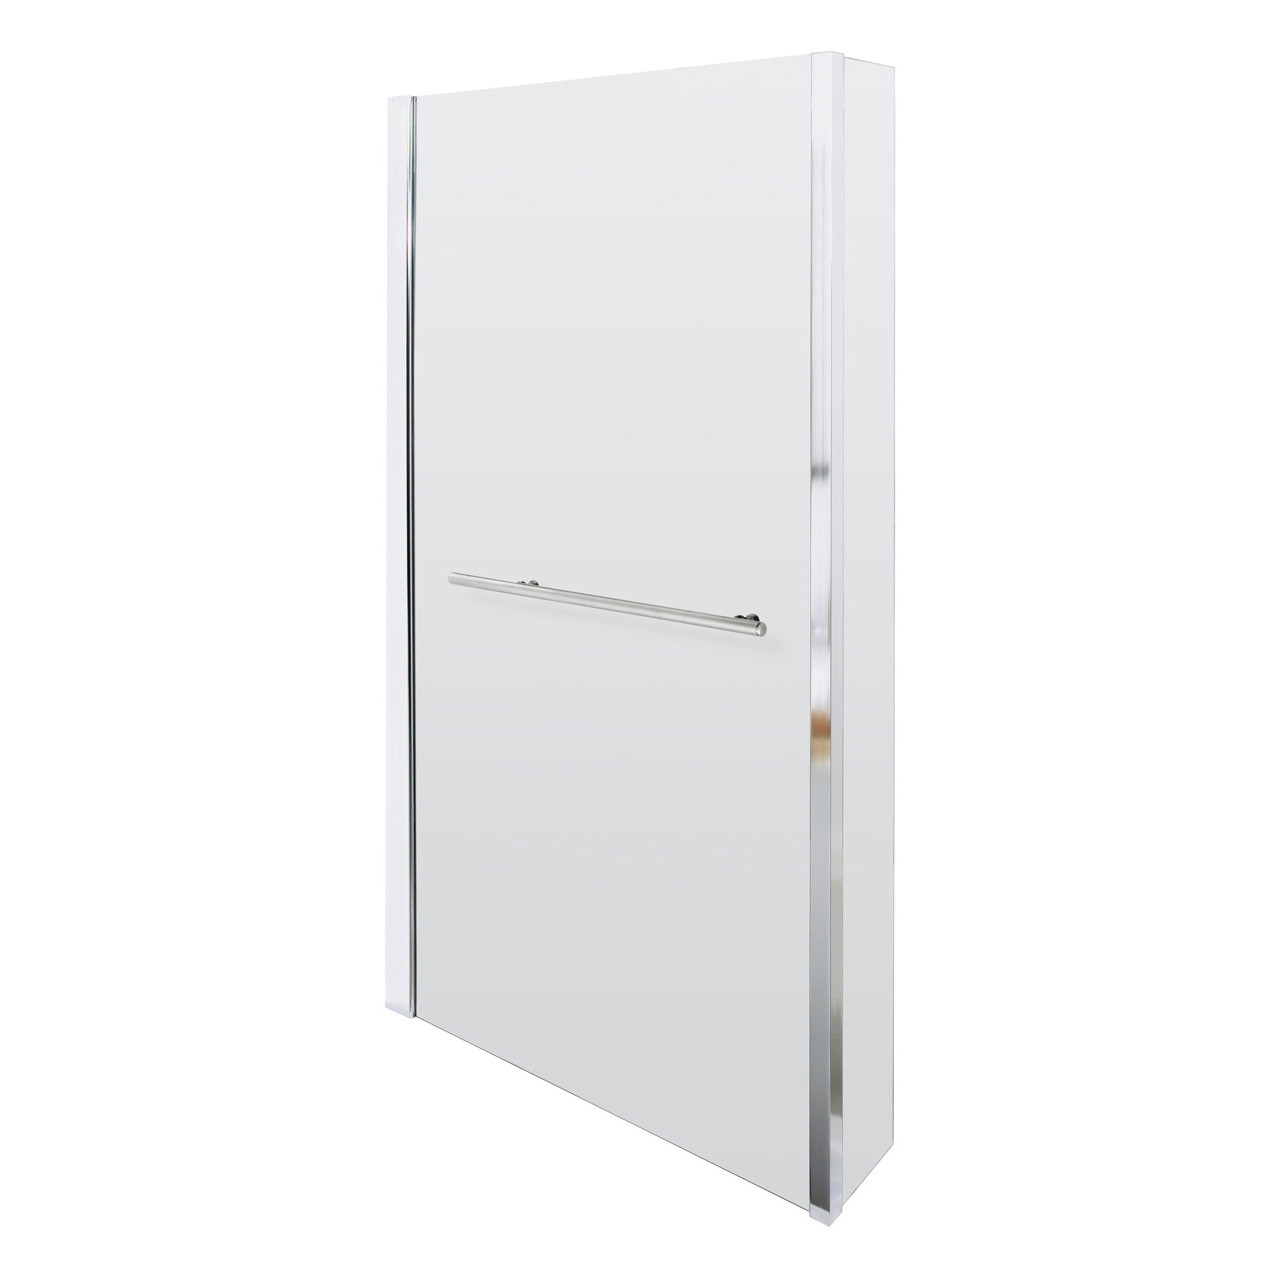 Nuie Quattro 805mm Square Hinged Shower Bath Screen with Rail - NSBSR1